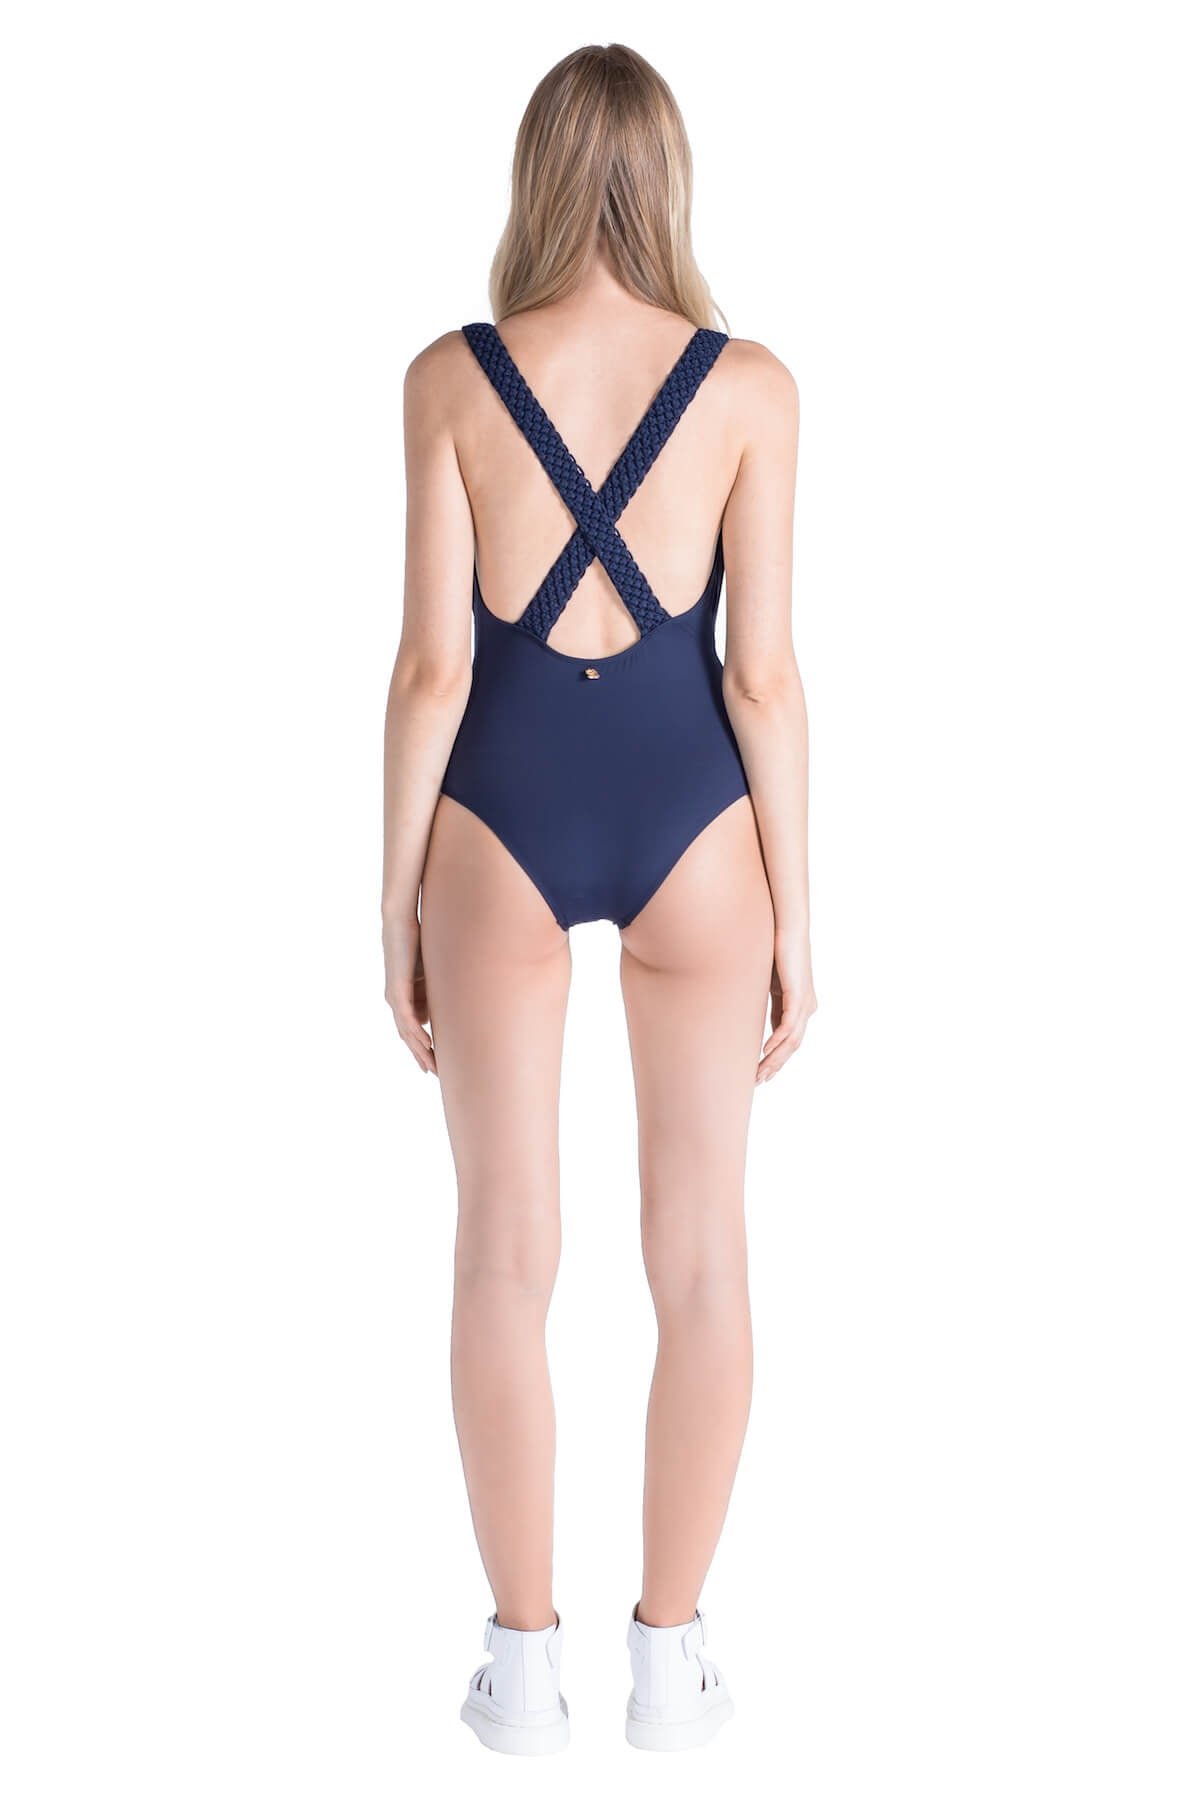 Back of Celeste deep plunge neckline swimsuit in Navy.